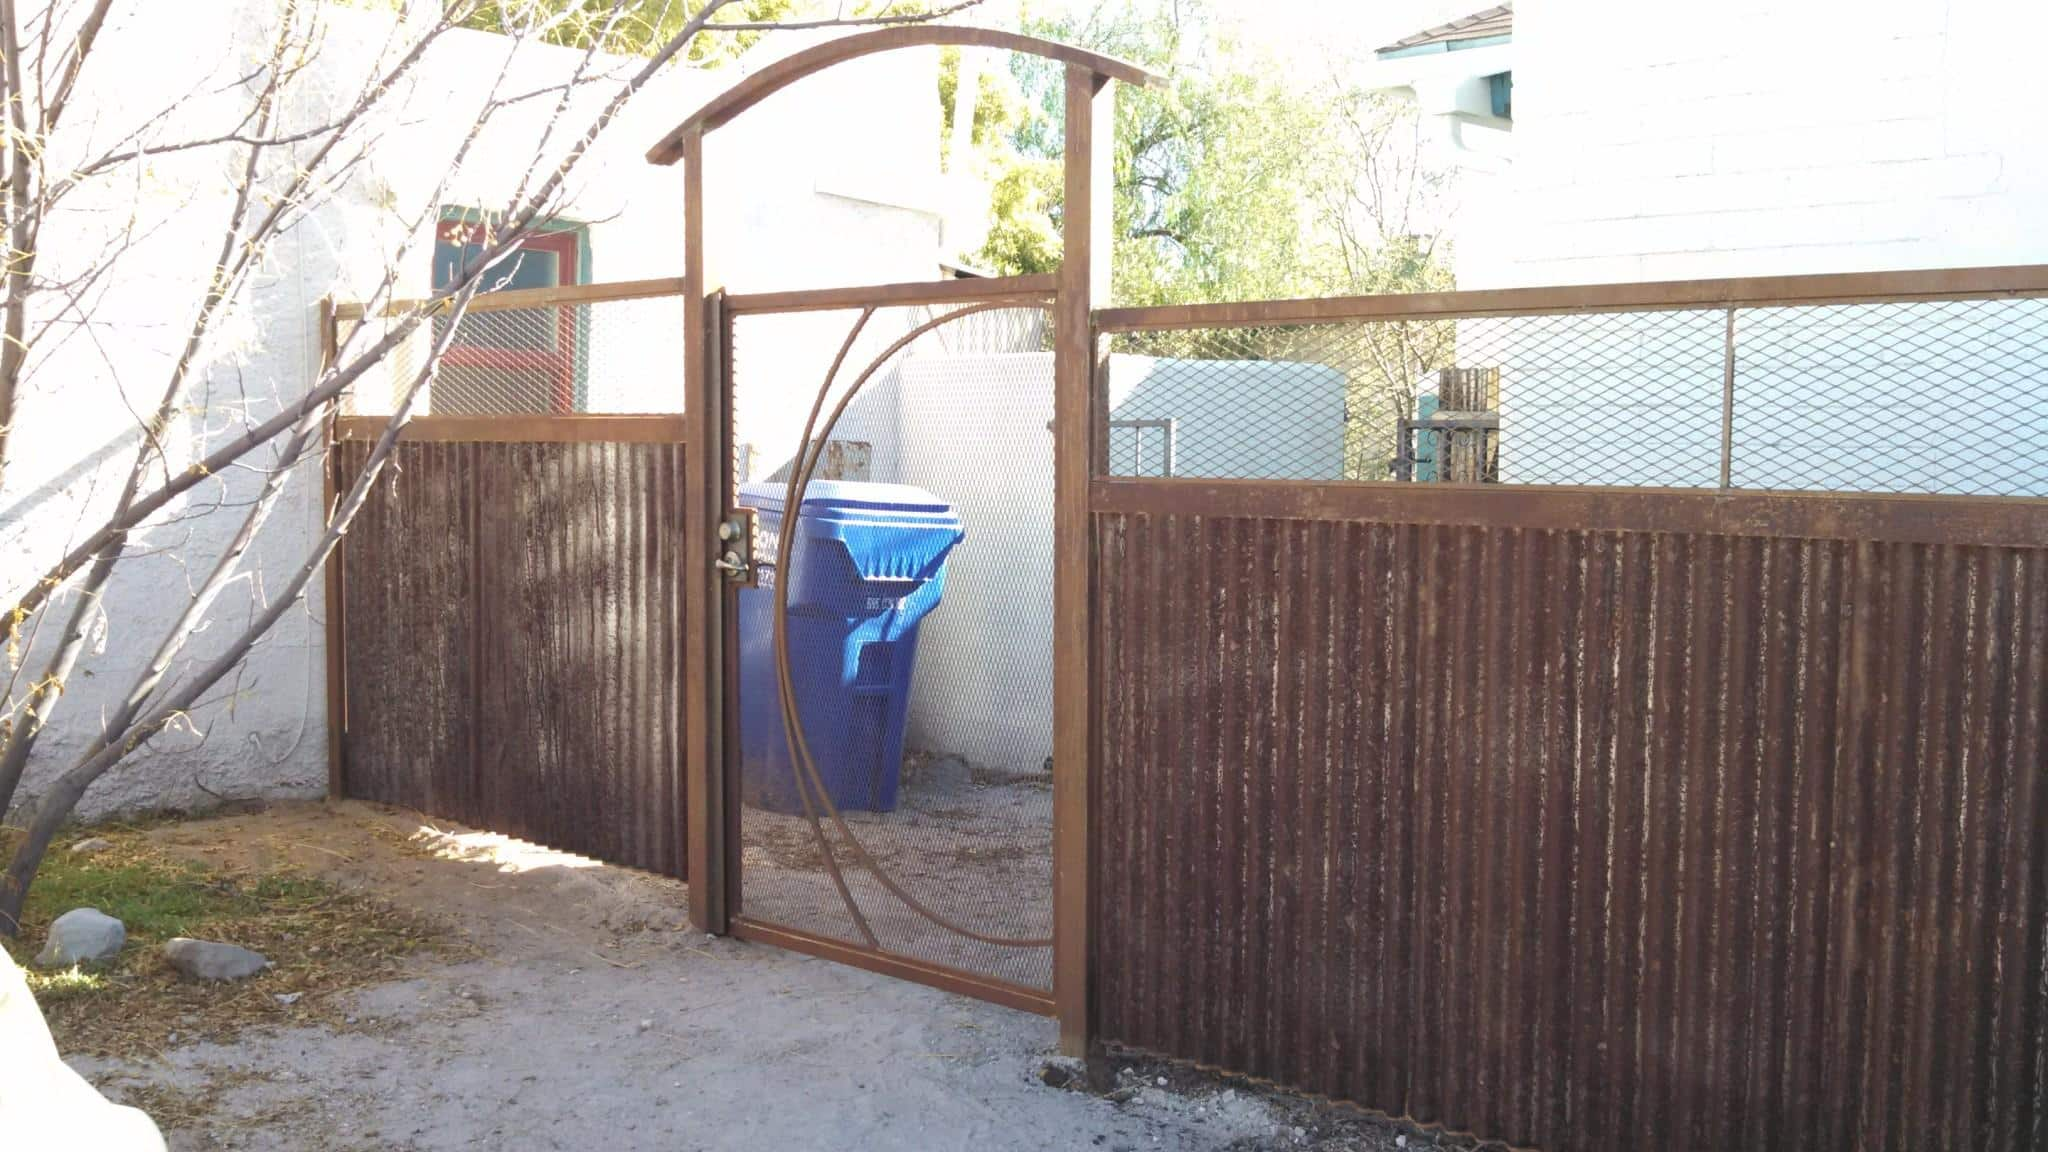 Corrugated Steel Fence | Metal Fence | Rusted Corrugated Metal Fence | Corrugated Steel Fence with Abstract Design Gate